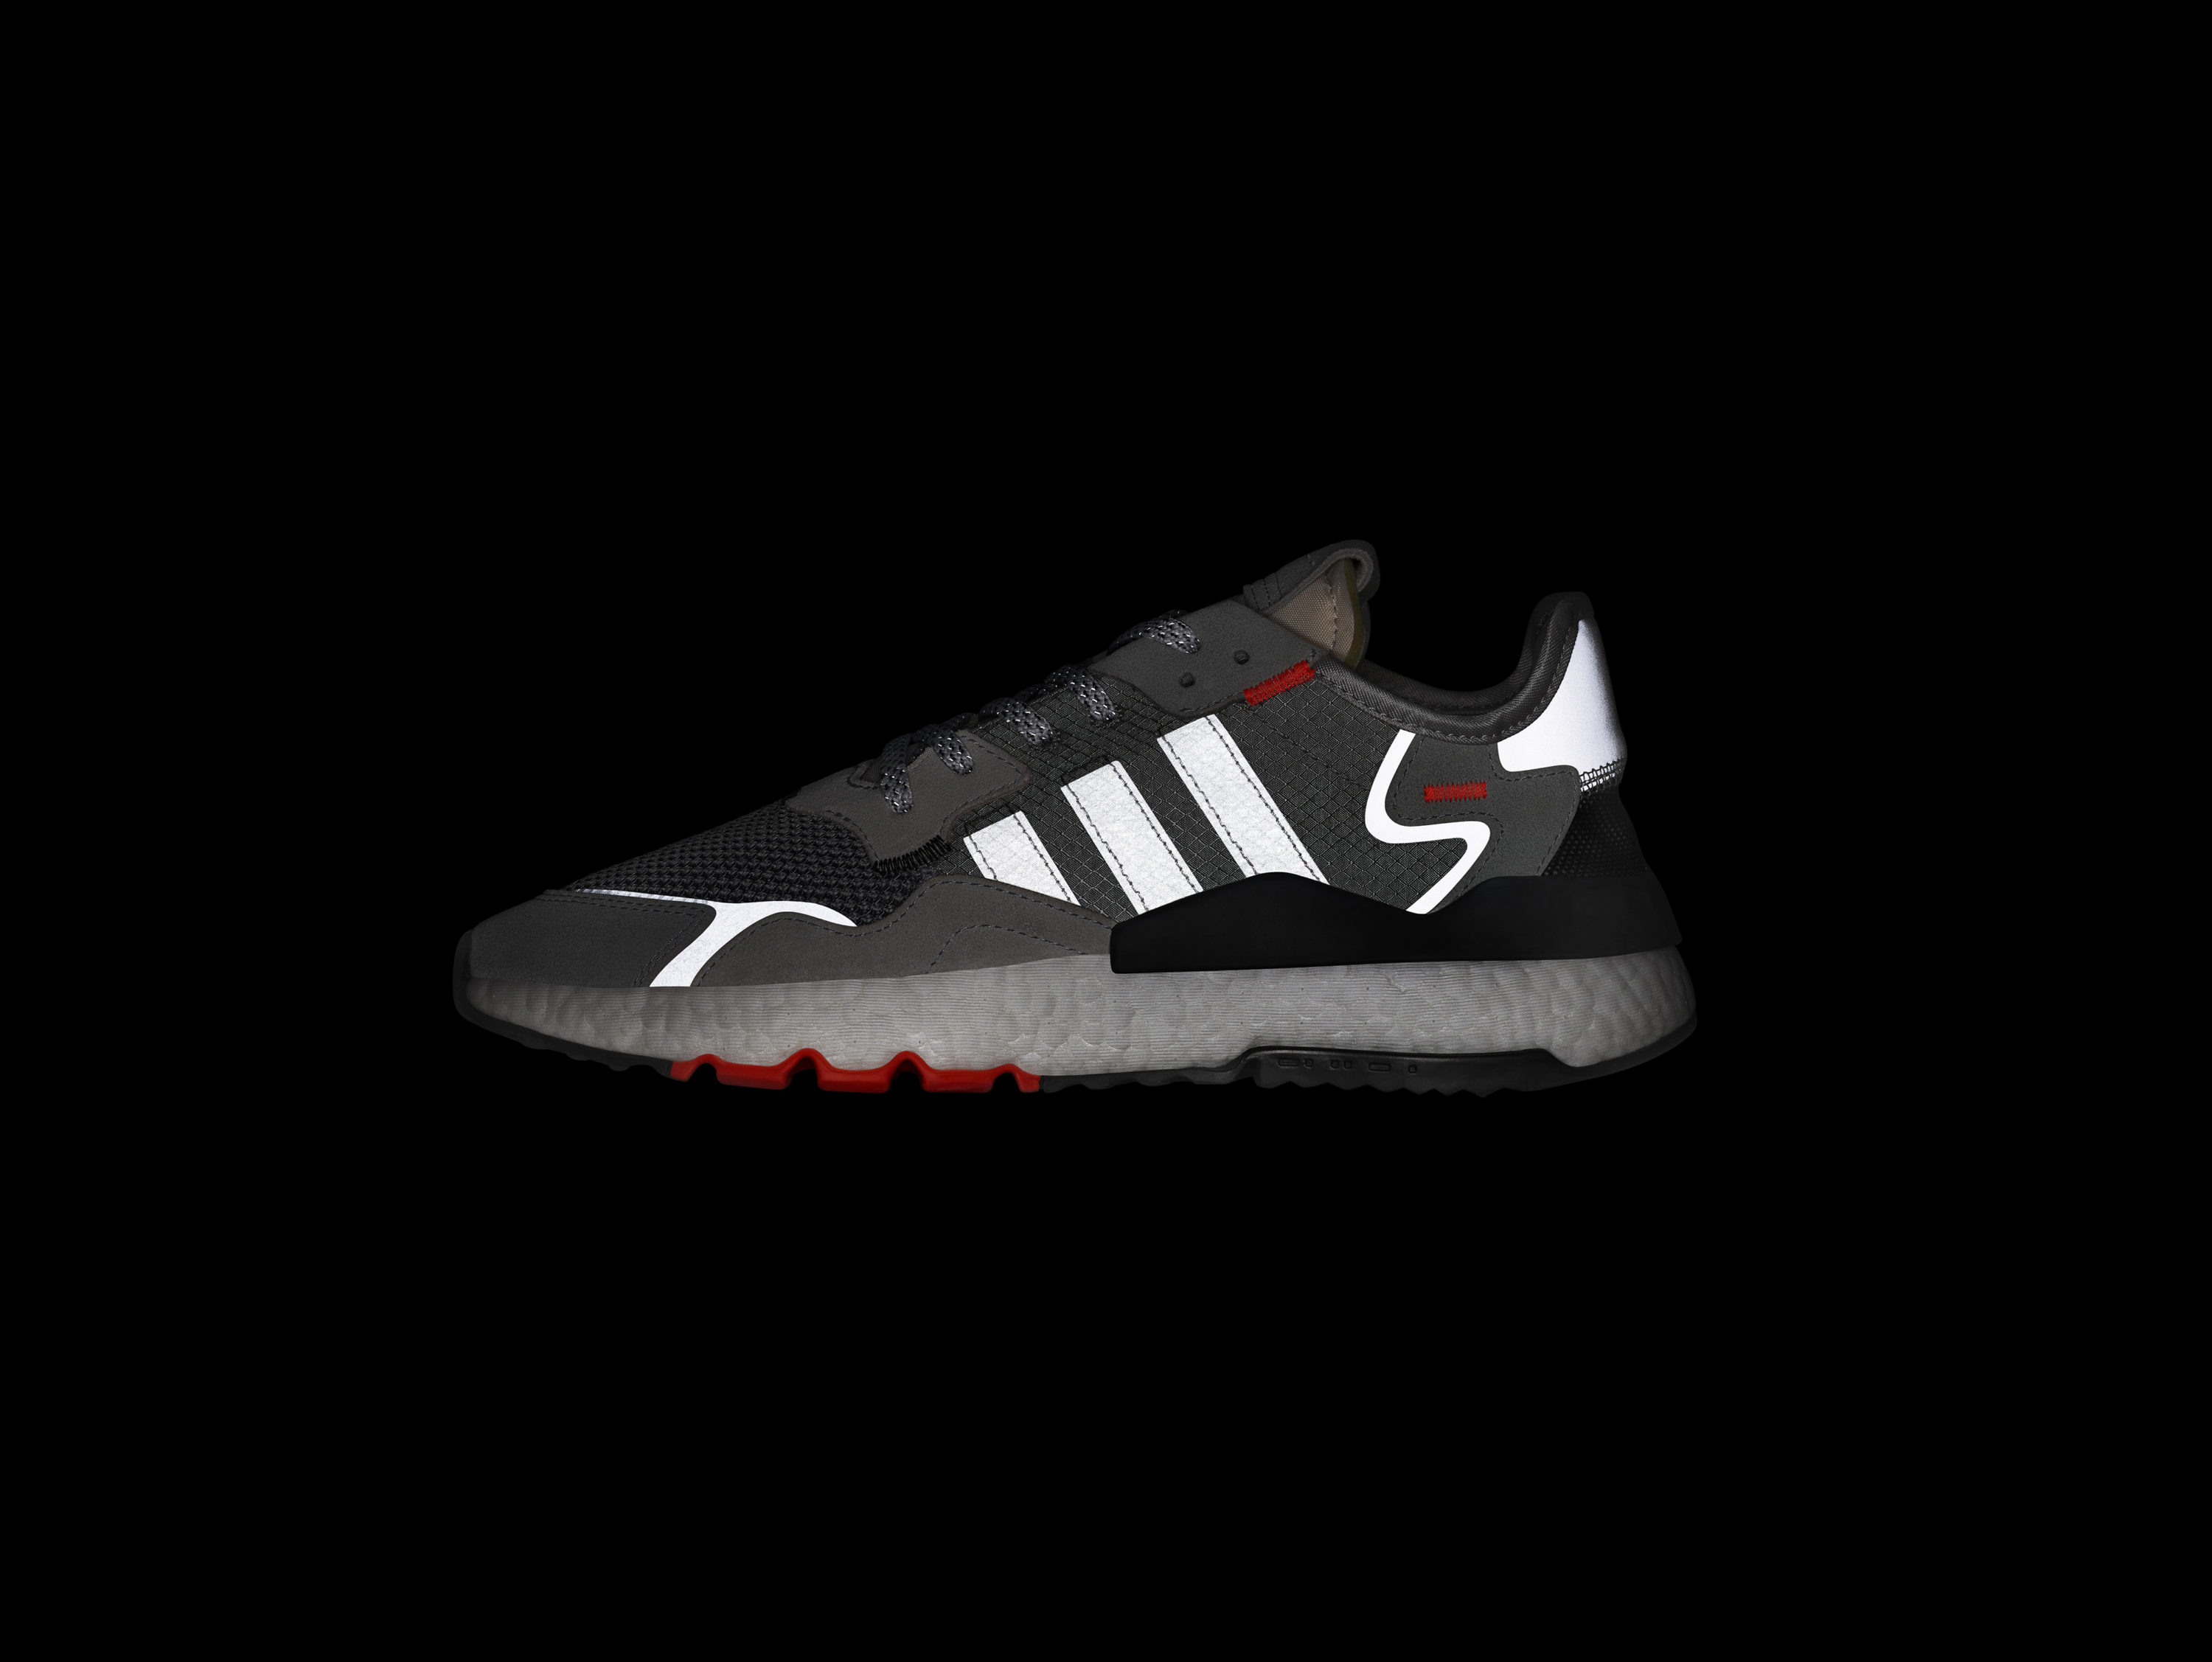 adidas Drop Four New Colourways of Their Reflective Nite Jogger Silhouette 7bef85fea